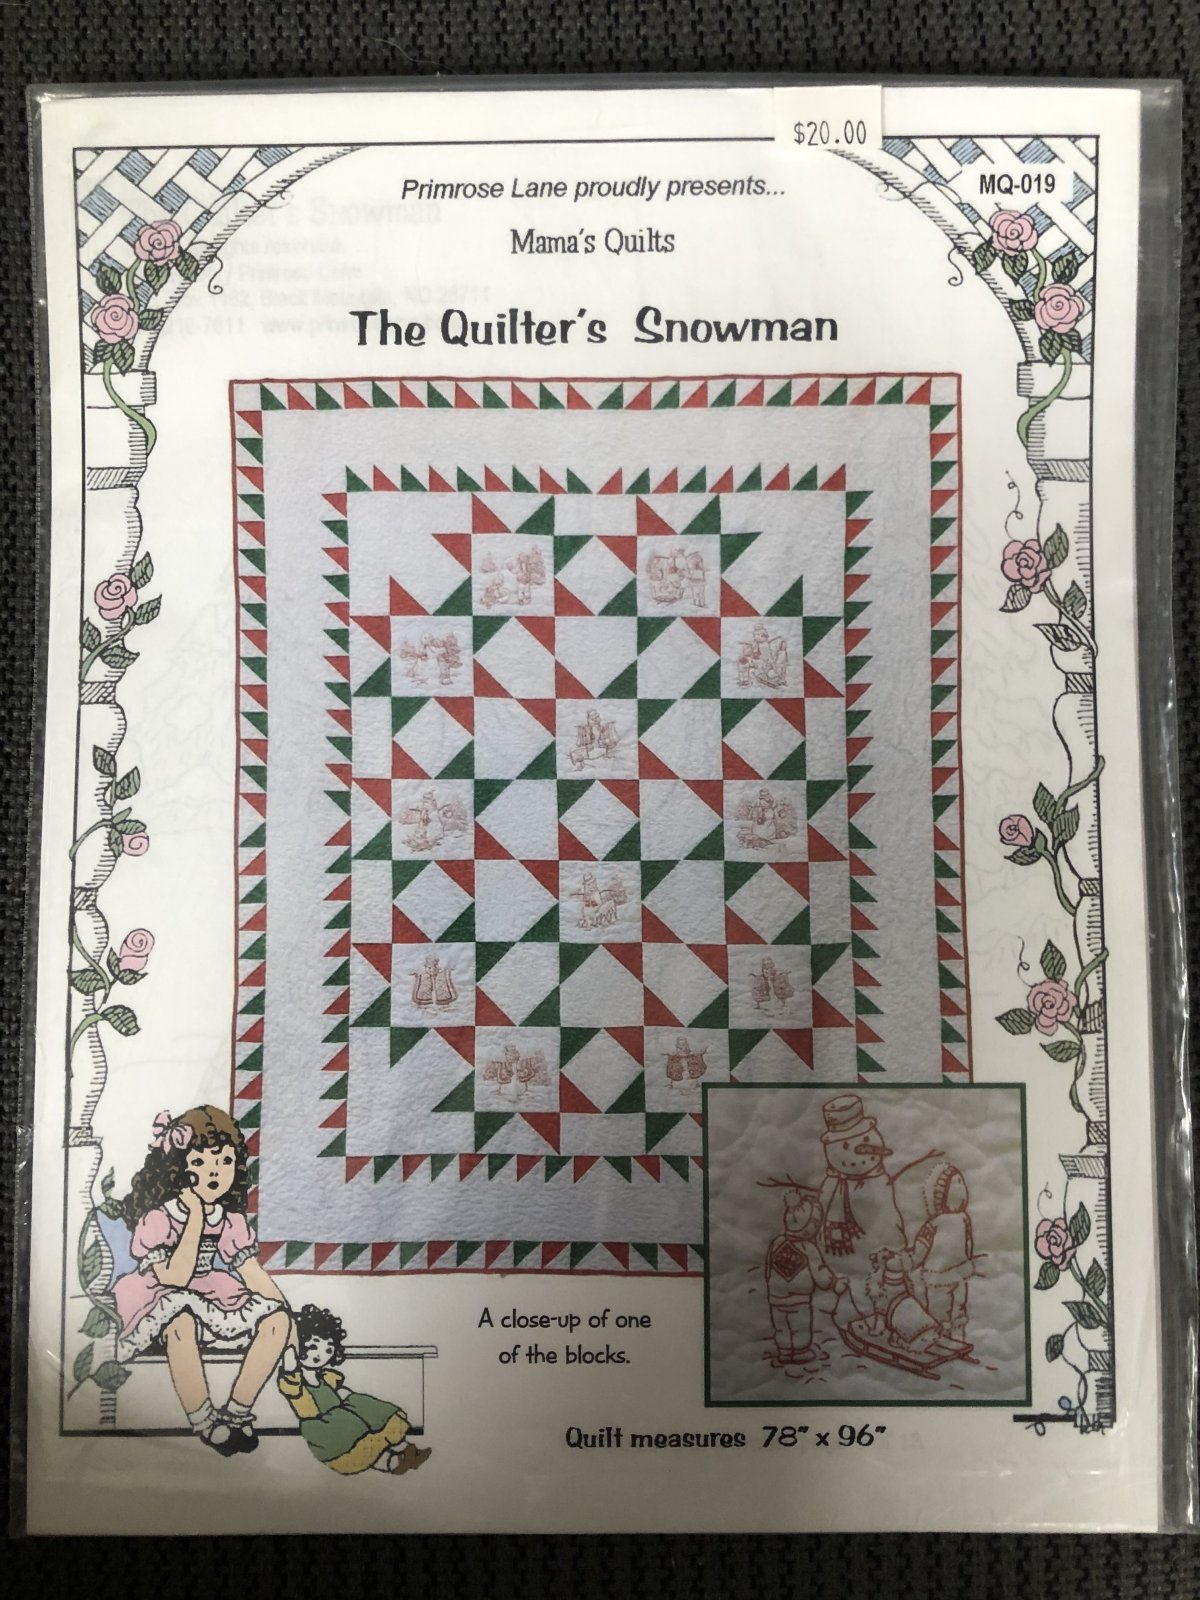 Quilter's Snowman, The